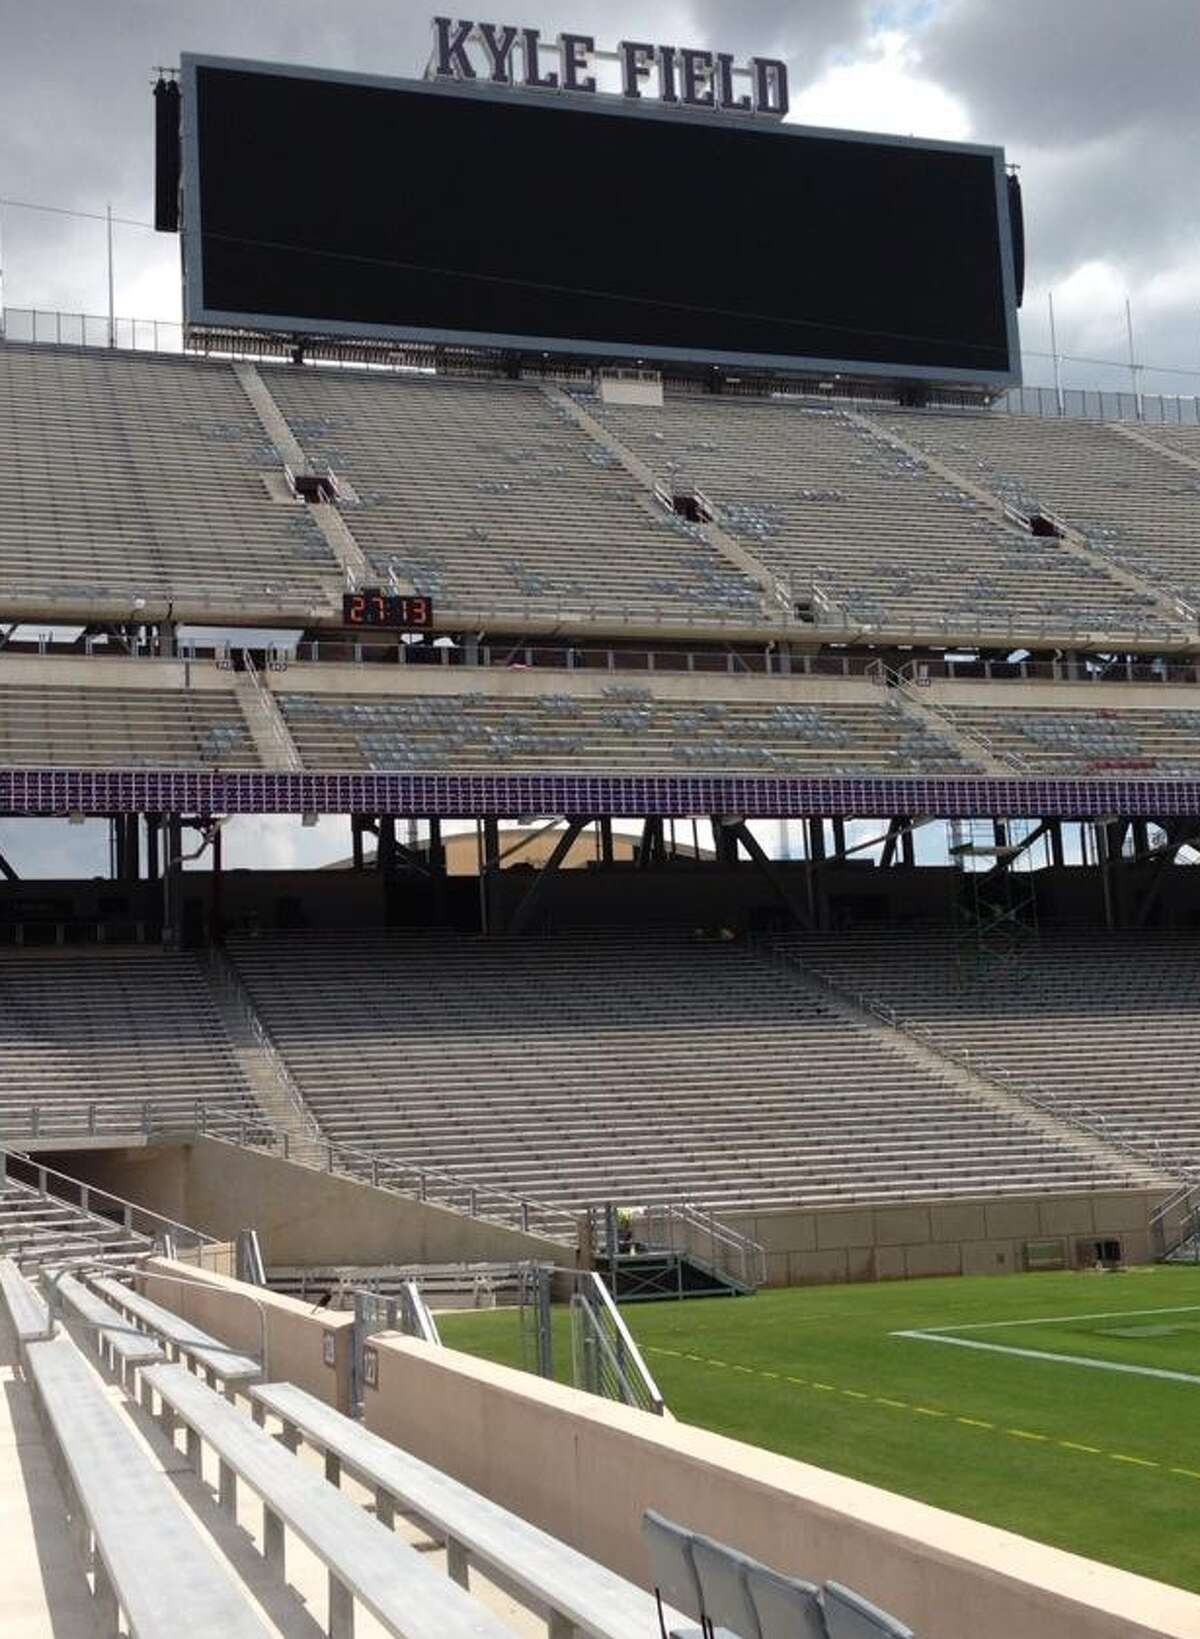 Kyle Field video board from east side, 4th row 20 yard line.